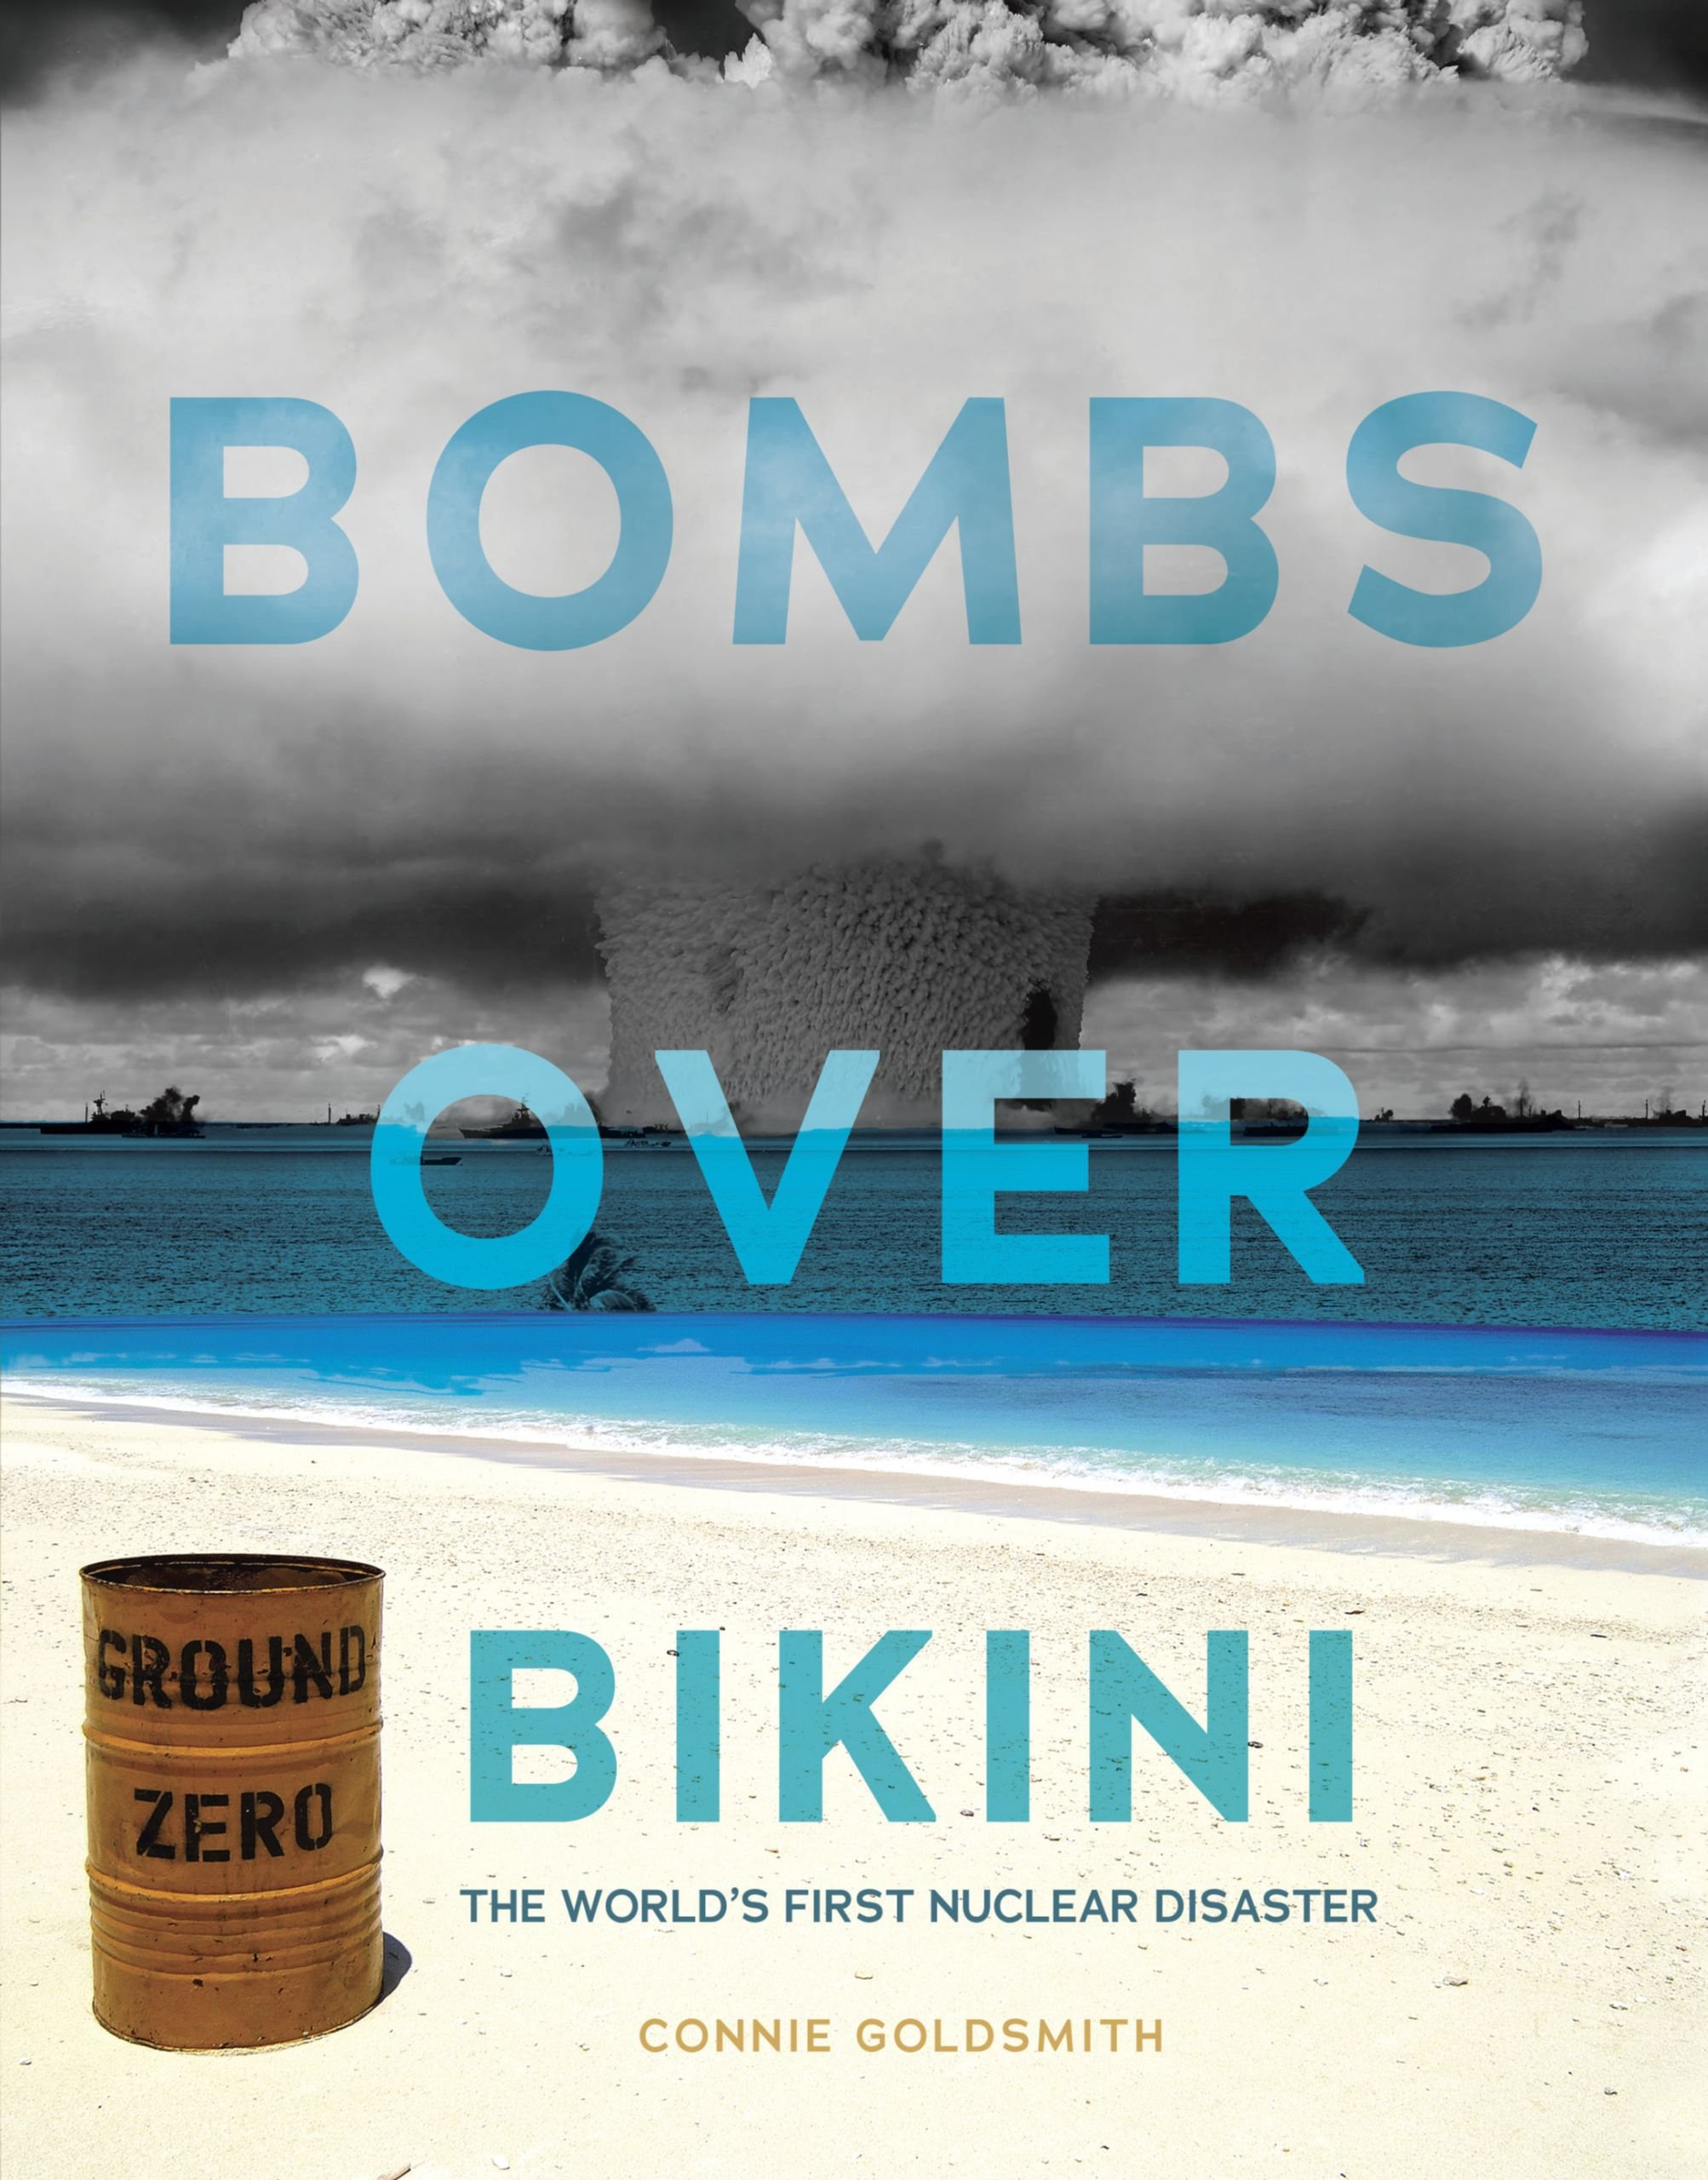 Bombs over Bikini: The World's First Nuclear Disaster (Nonfiction - Young Adult) by Twenty-First Century Books (Image #1)